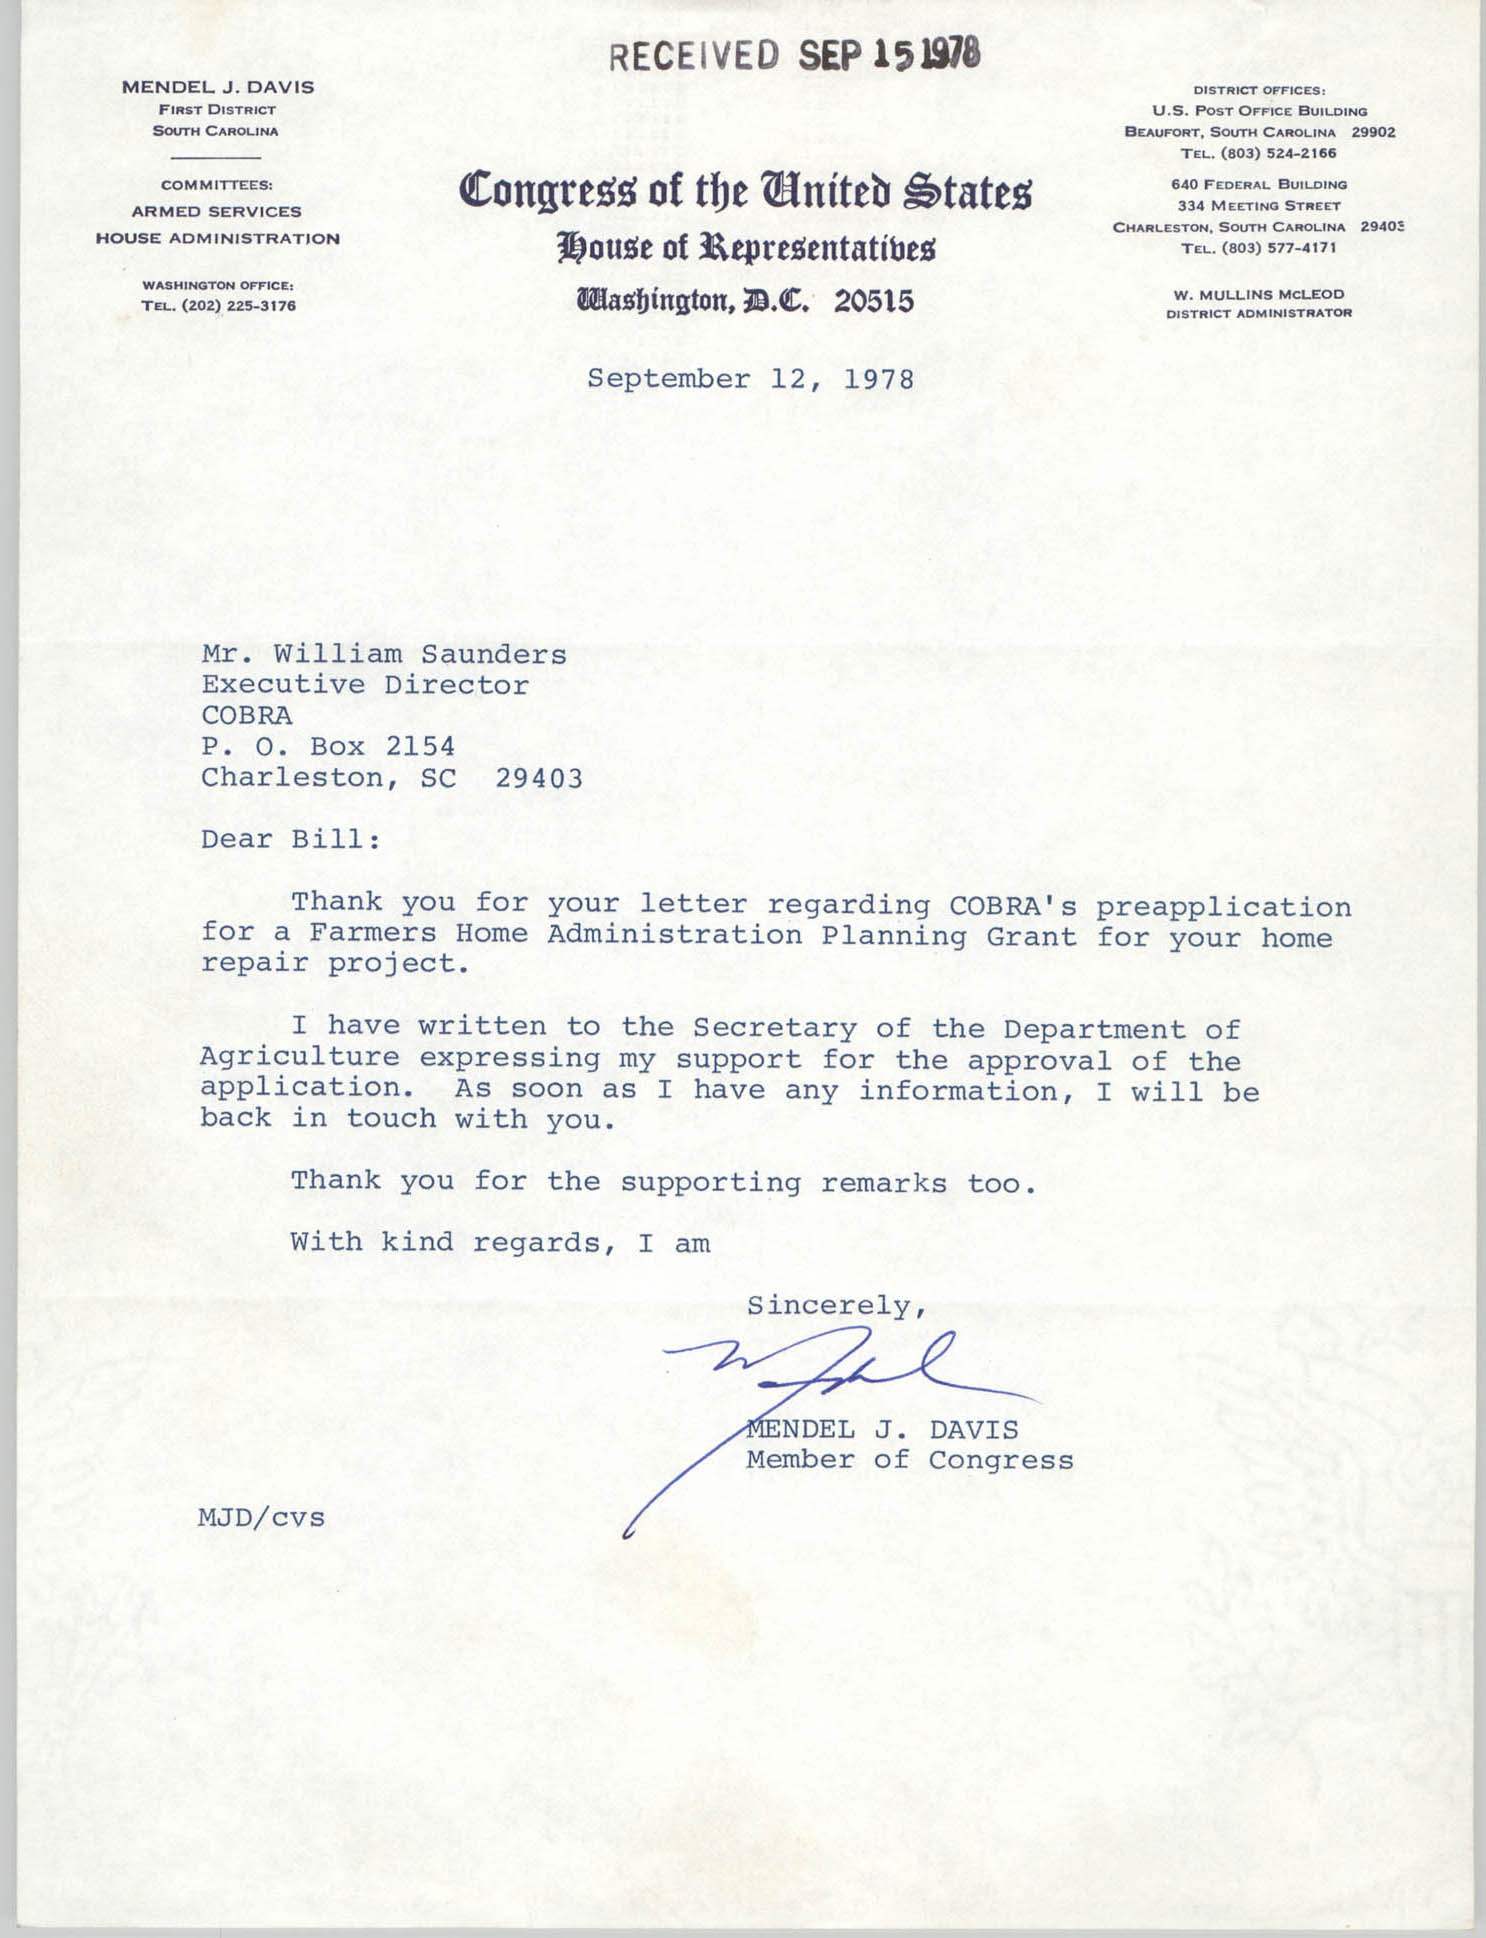 Letter from Mendel J. Davis to William Saunders, September 12, 1978